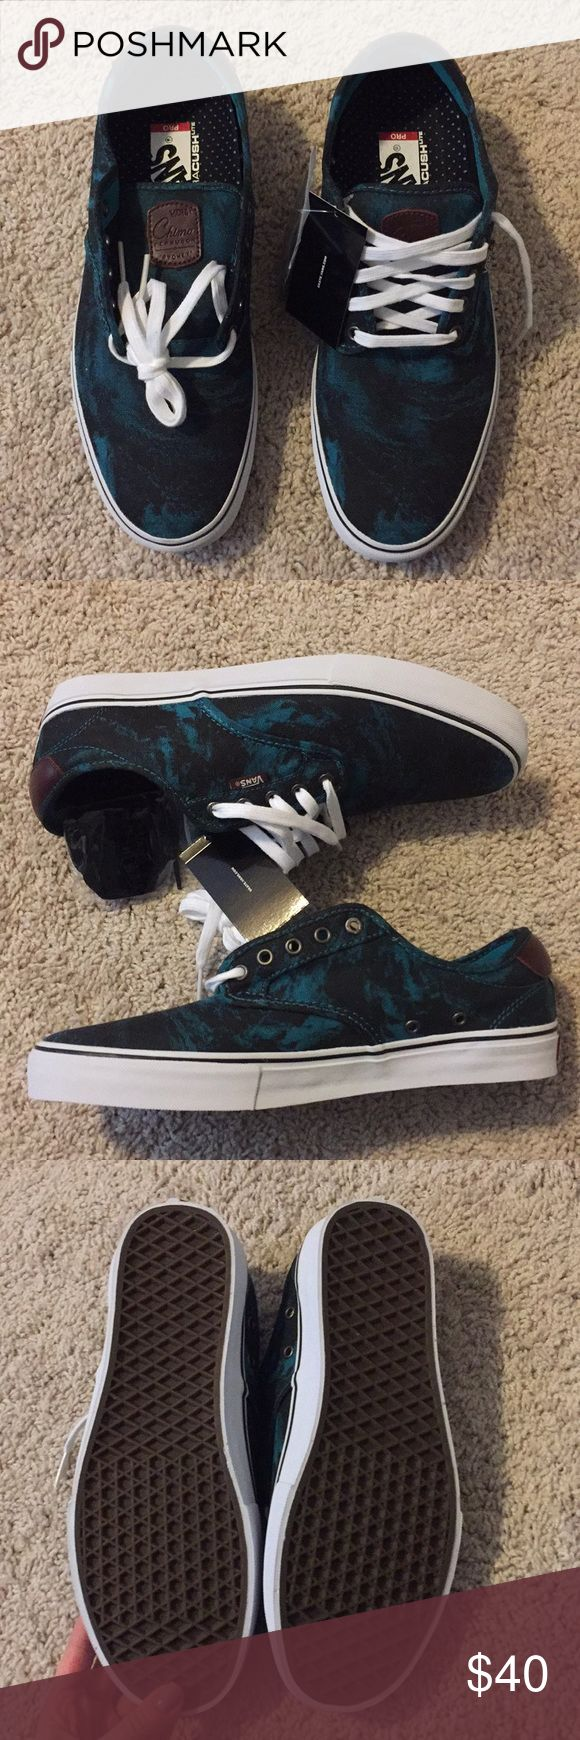 """Vans Chima Ferguson Pro Sneakers Brand new Vans Chima Ferguson Pros. Size 11.5 Men's, have the """"ultra Cush"""" soles so they are very comfy! Marble print in black and turquoise color. Come with an extra pair of black laces. Vans Shoes Sneakers"""